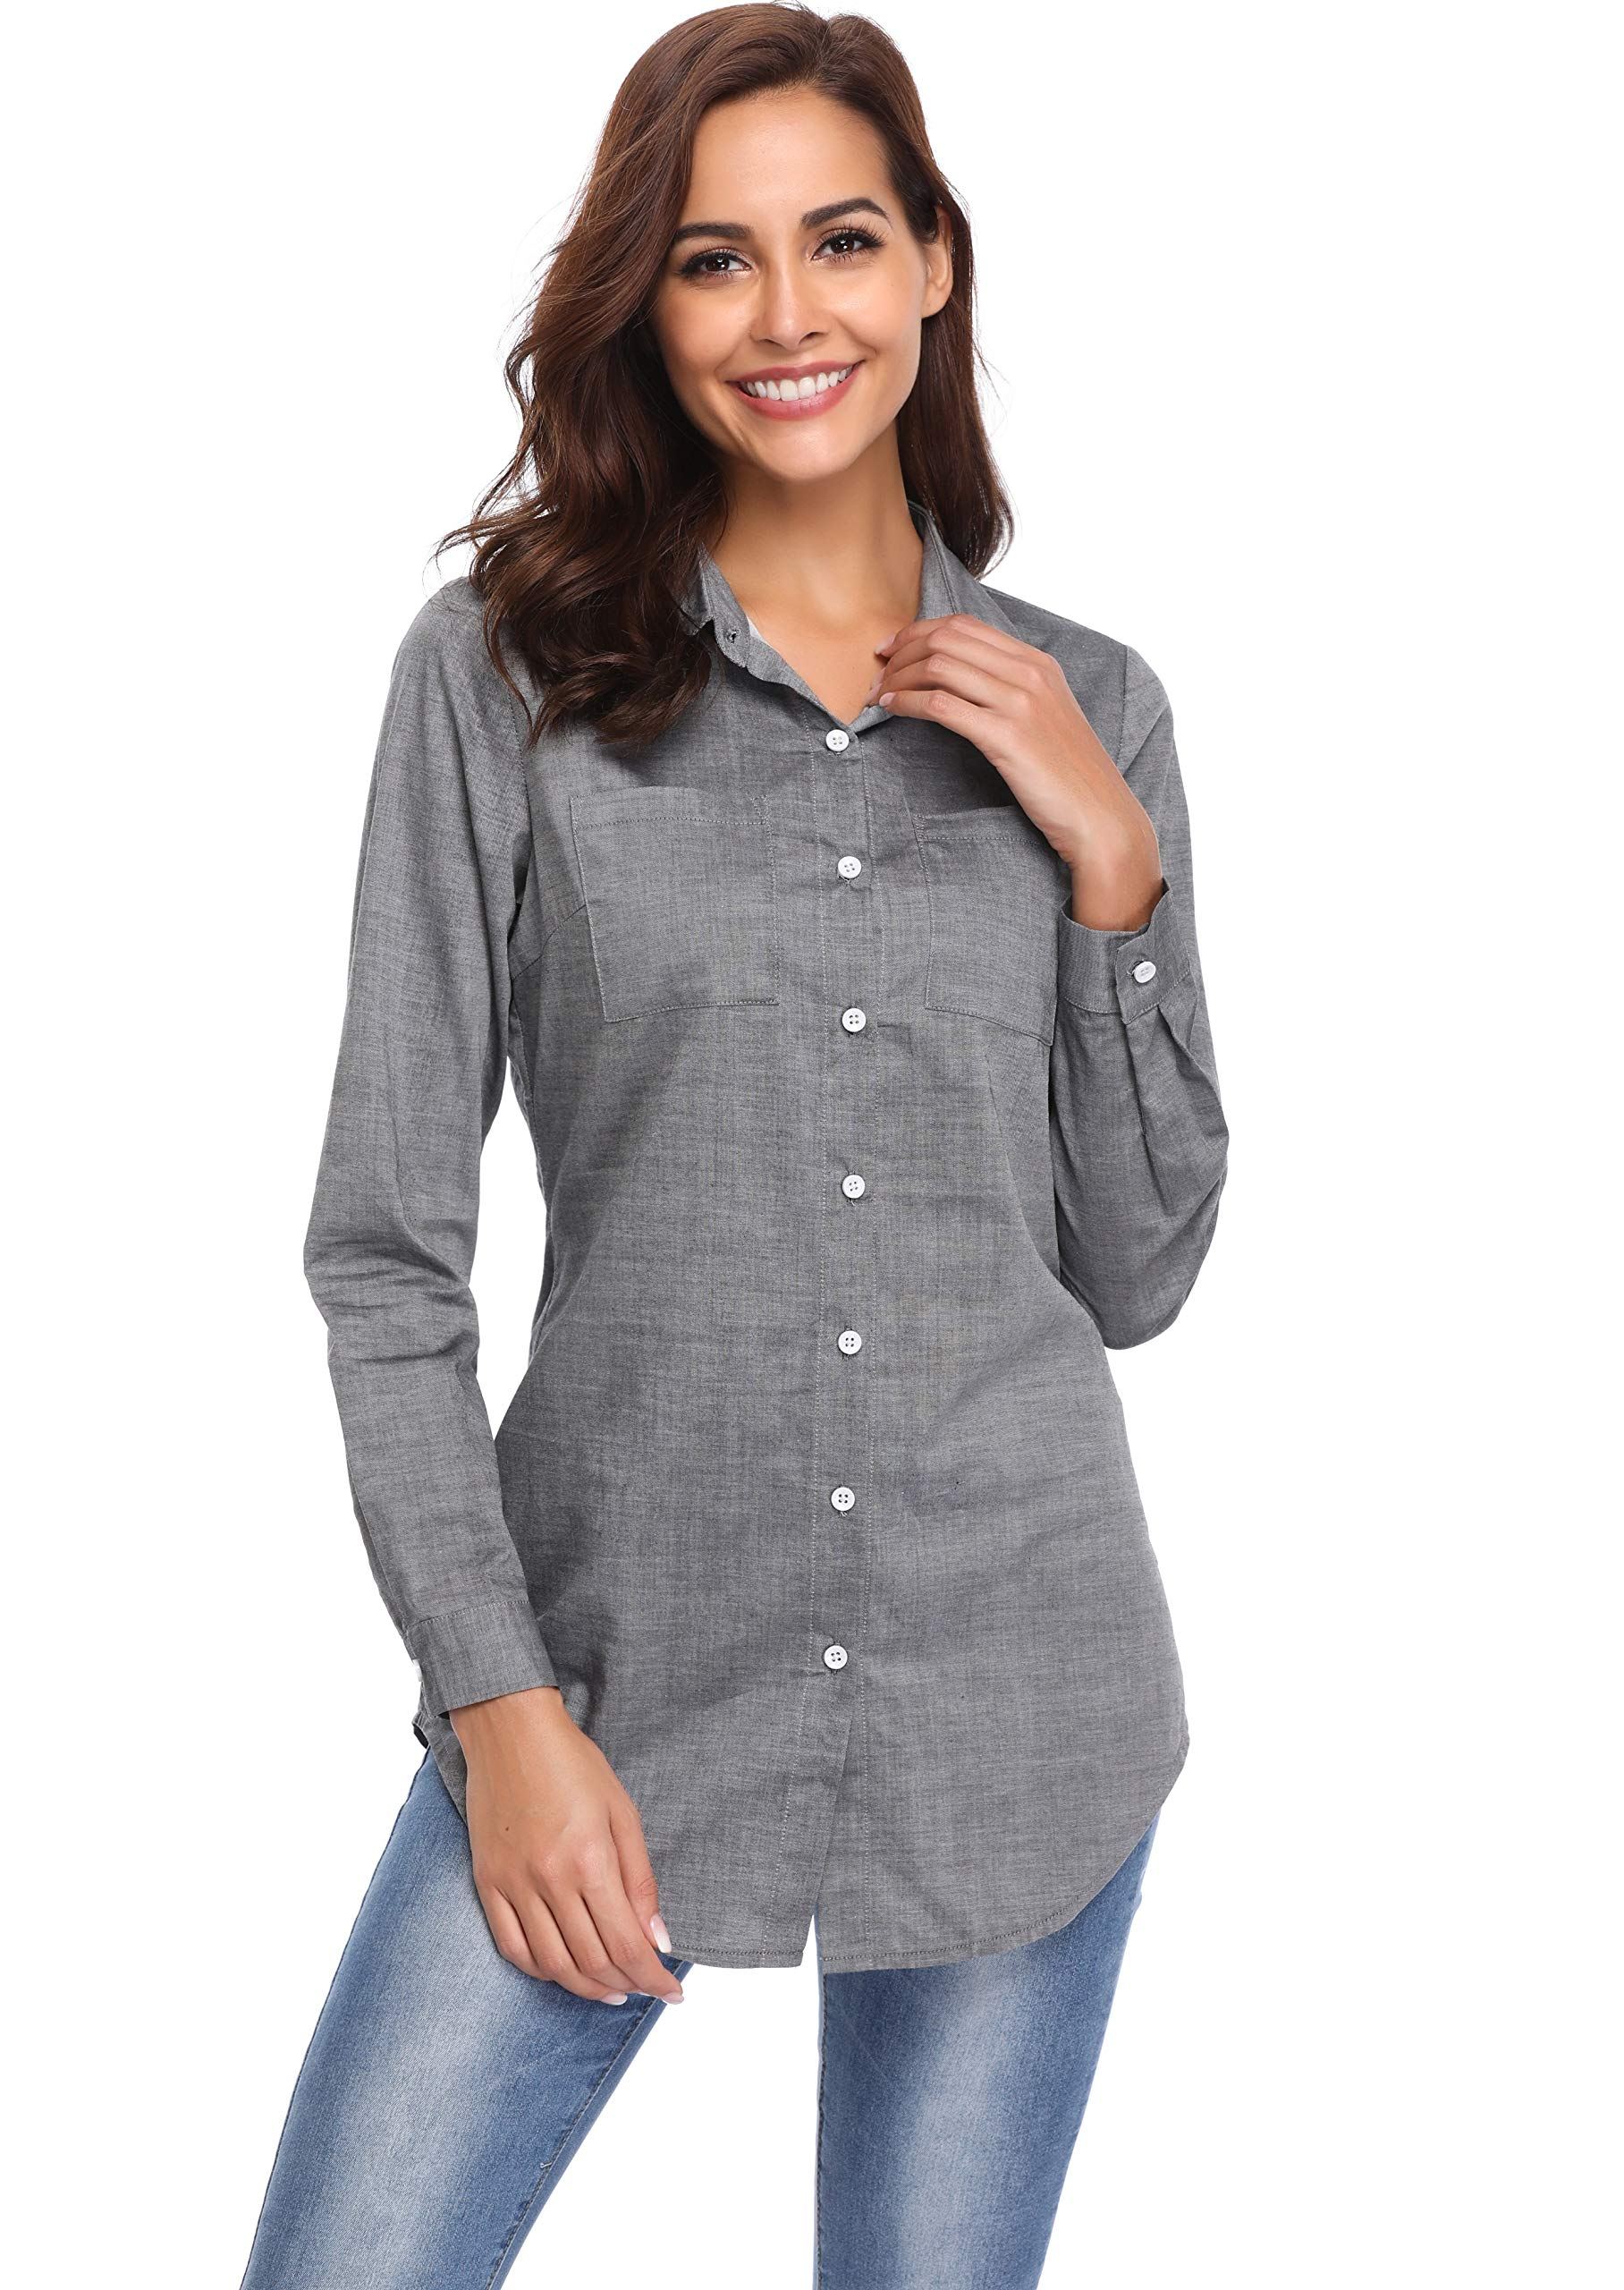 Argstar Women's Chambray Button Down Shirt Long Sleeve Jeans Top,Gray,Large (US 12-14) by Argstar (Image #1)